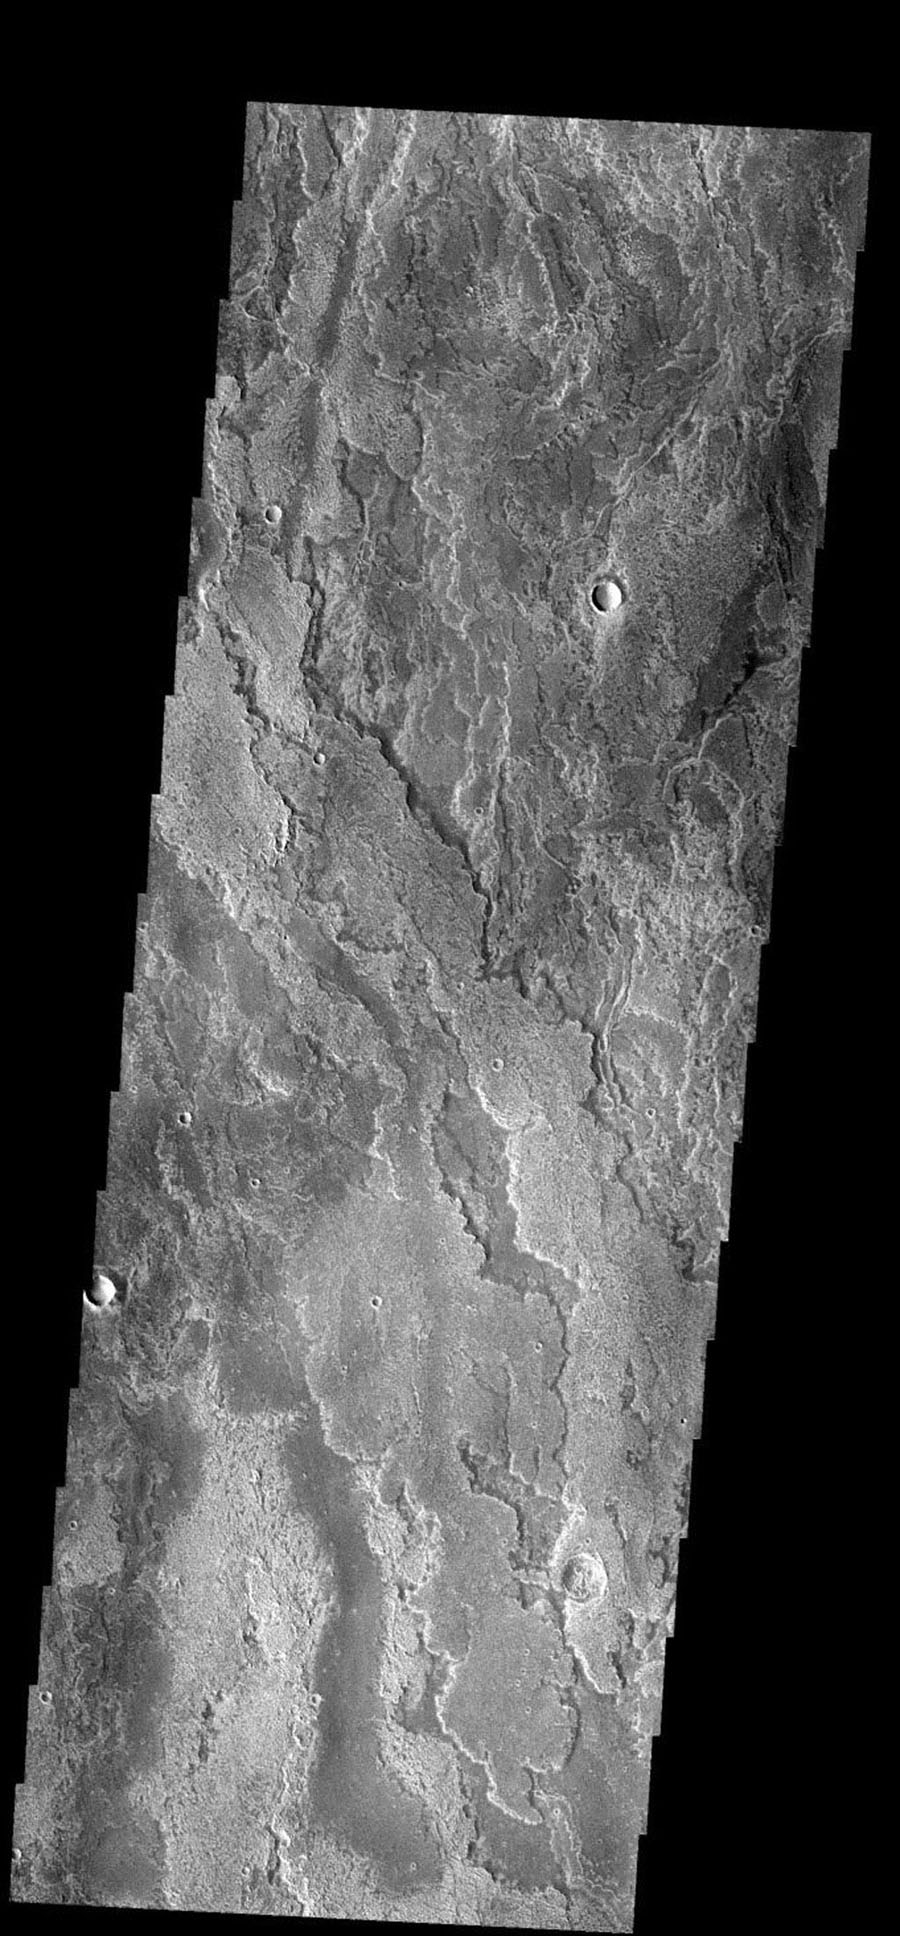 These layered volcanic flows originated from Arsia Mons on Mars as seen by NASA's 2001 Mars Odyssey spacecraft.